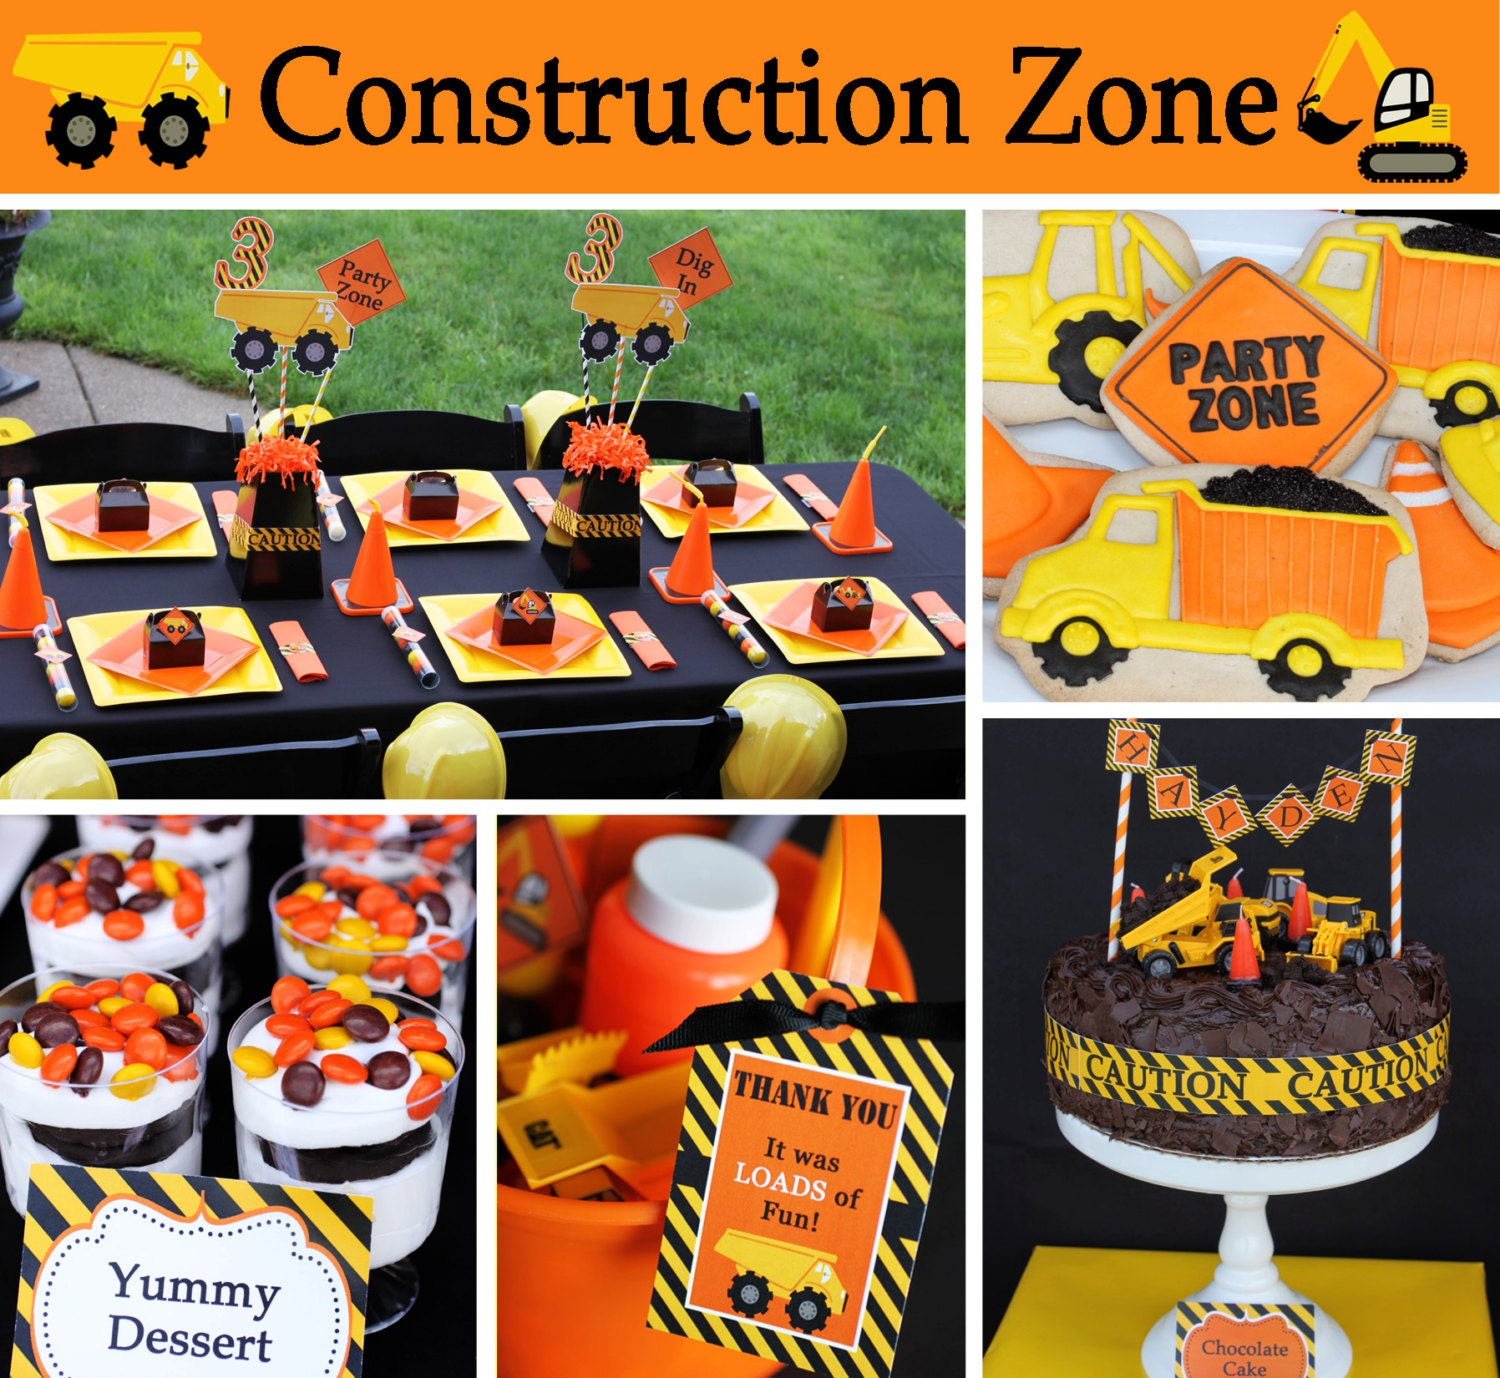 Construction Zone Dump Truck Birthday Party Package PRINTABLE